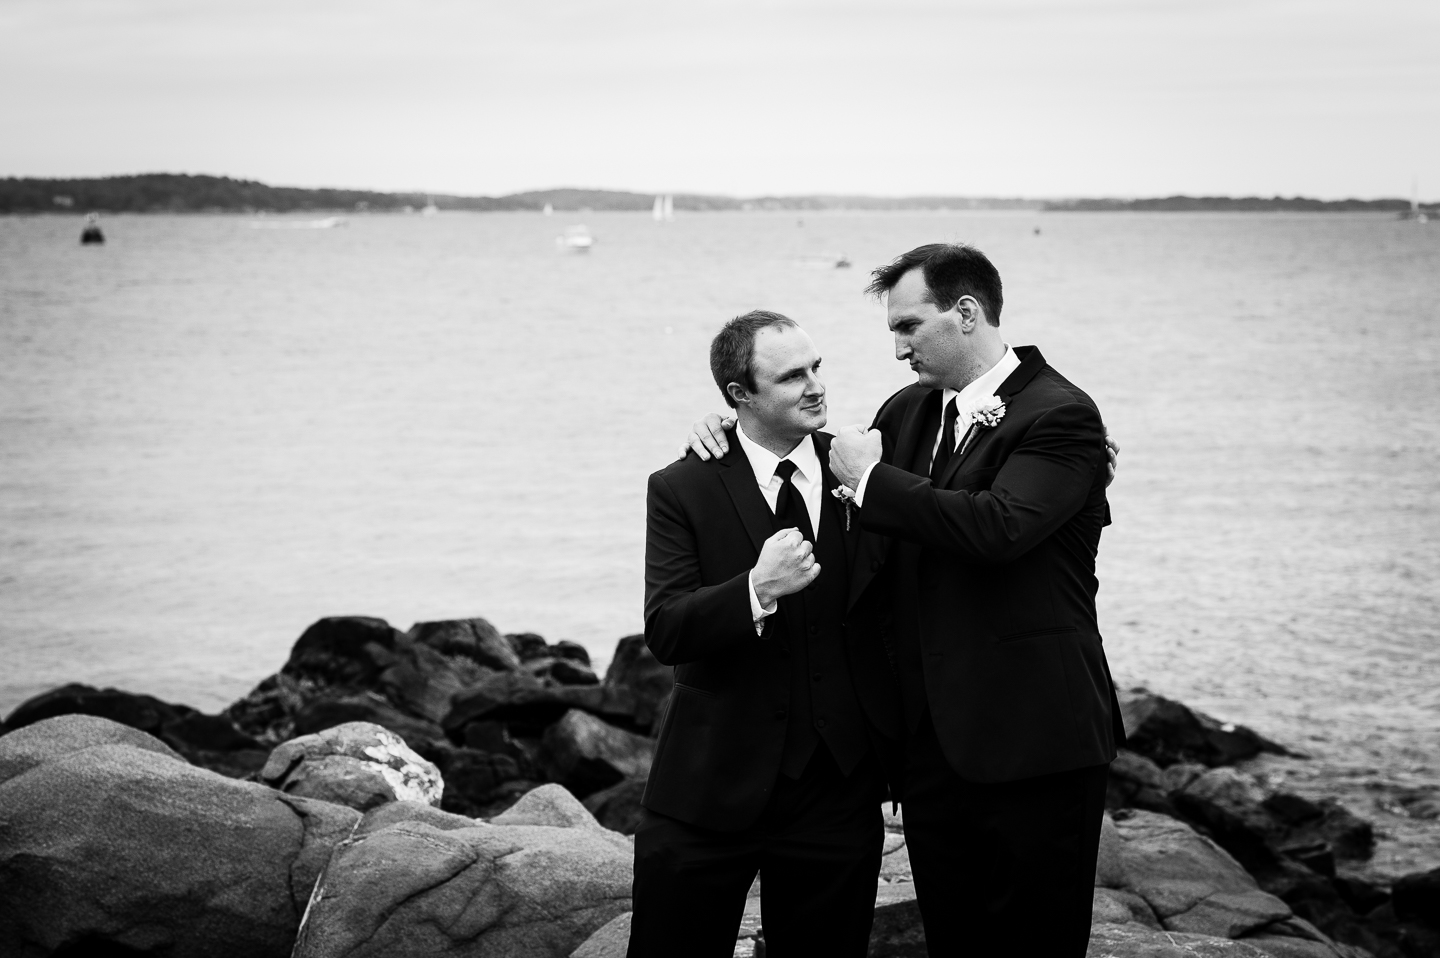 the handsome groom and his brother pose on some rocks by the ocean for a quick picture